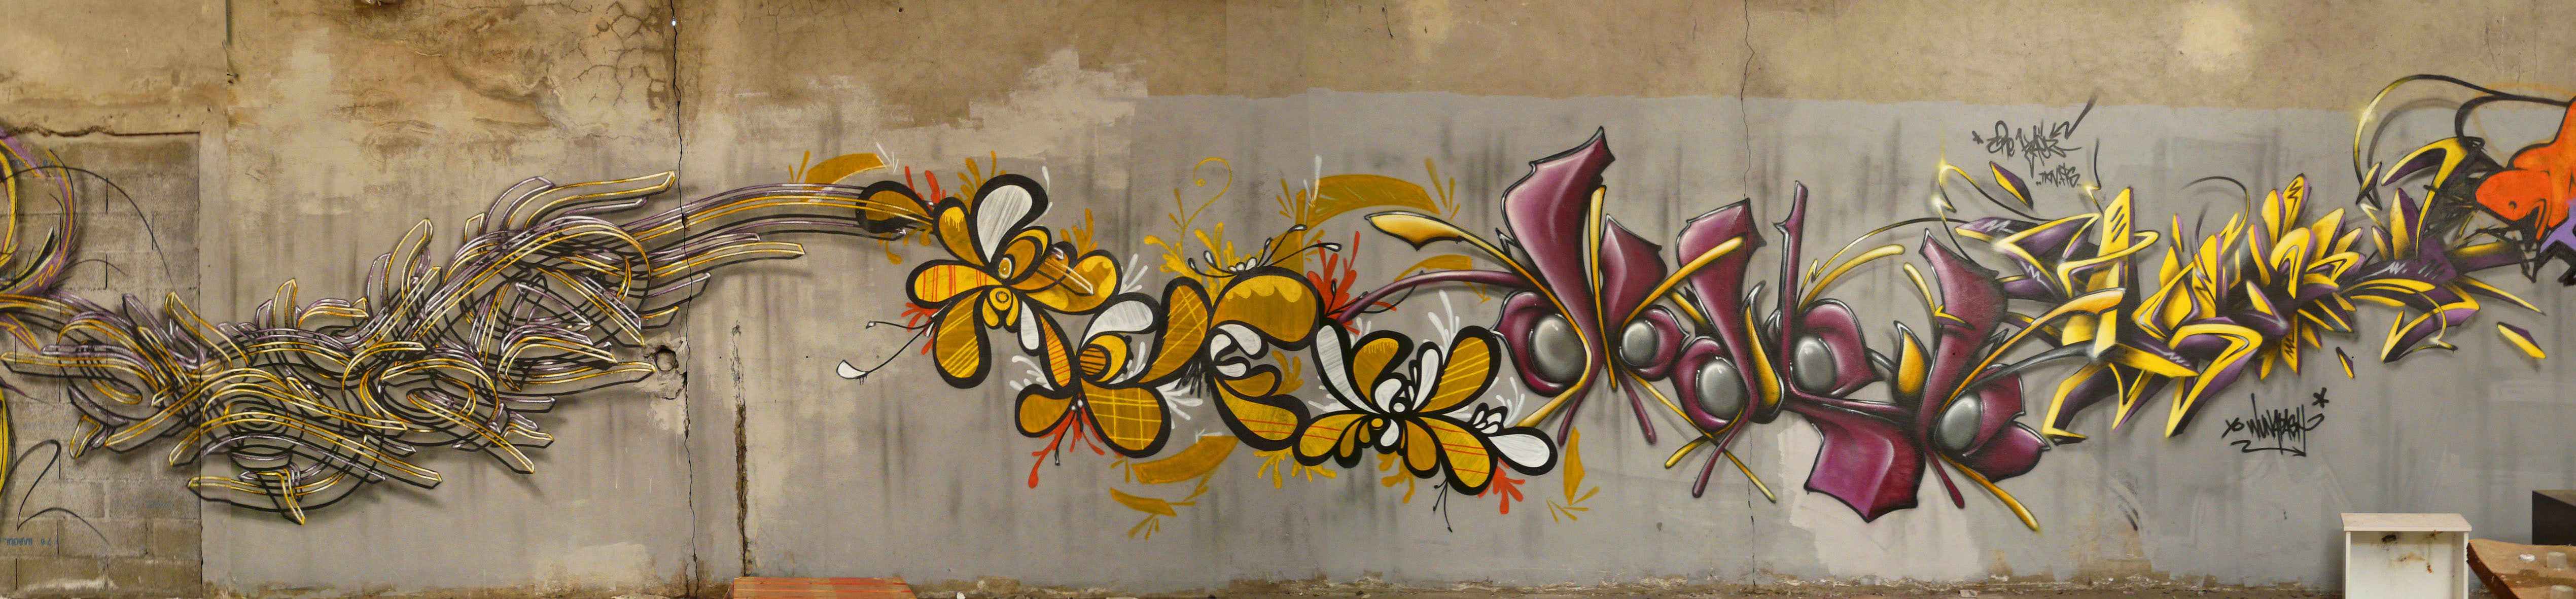 Graffiti - Toulouse